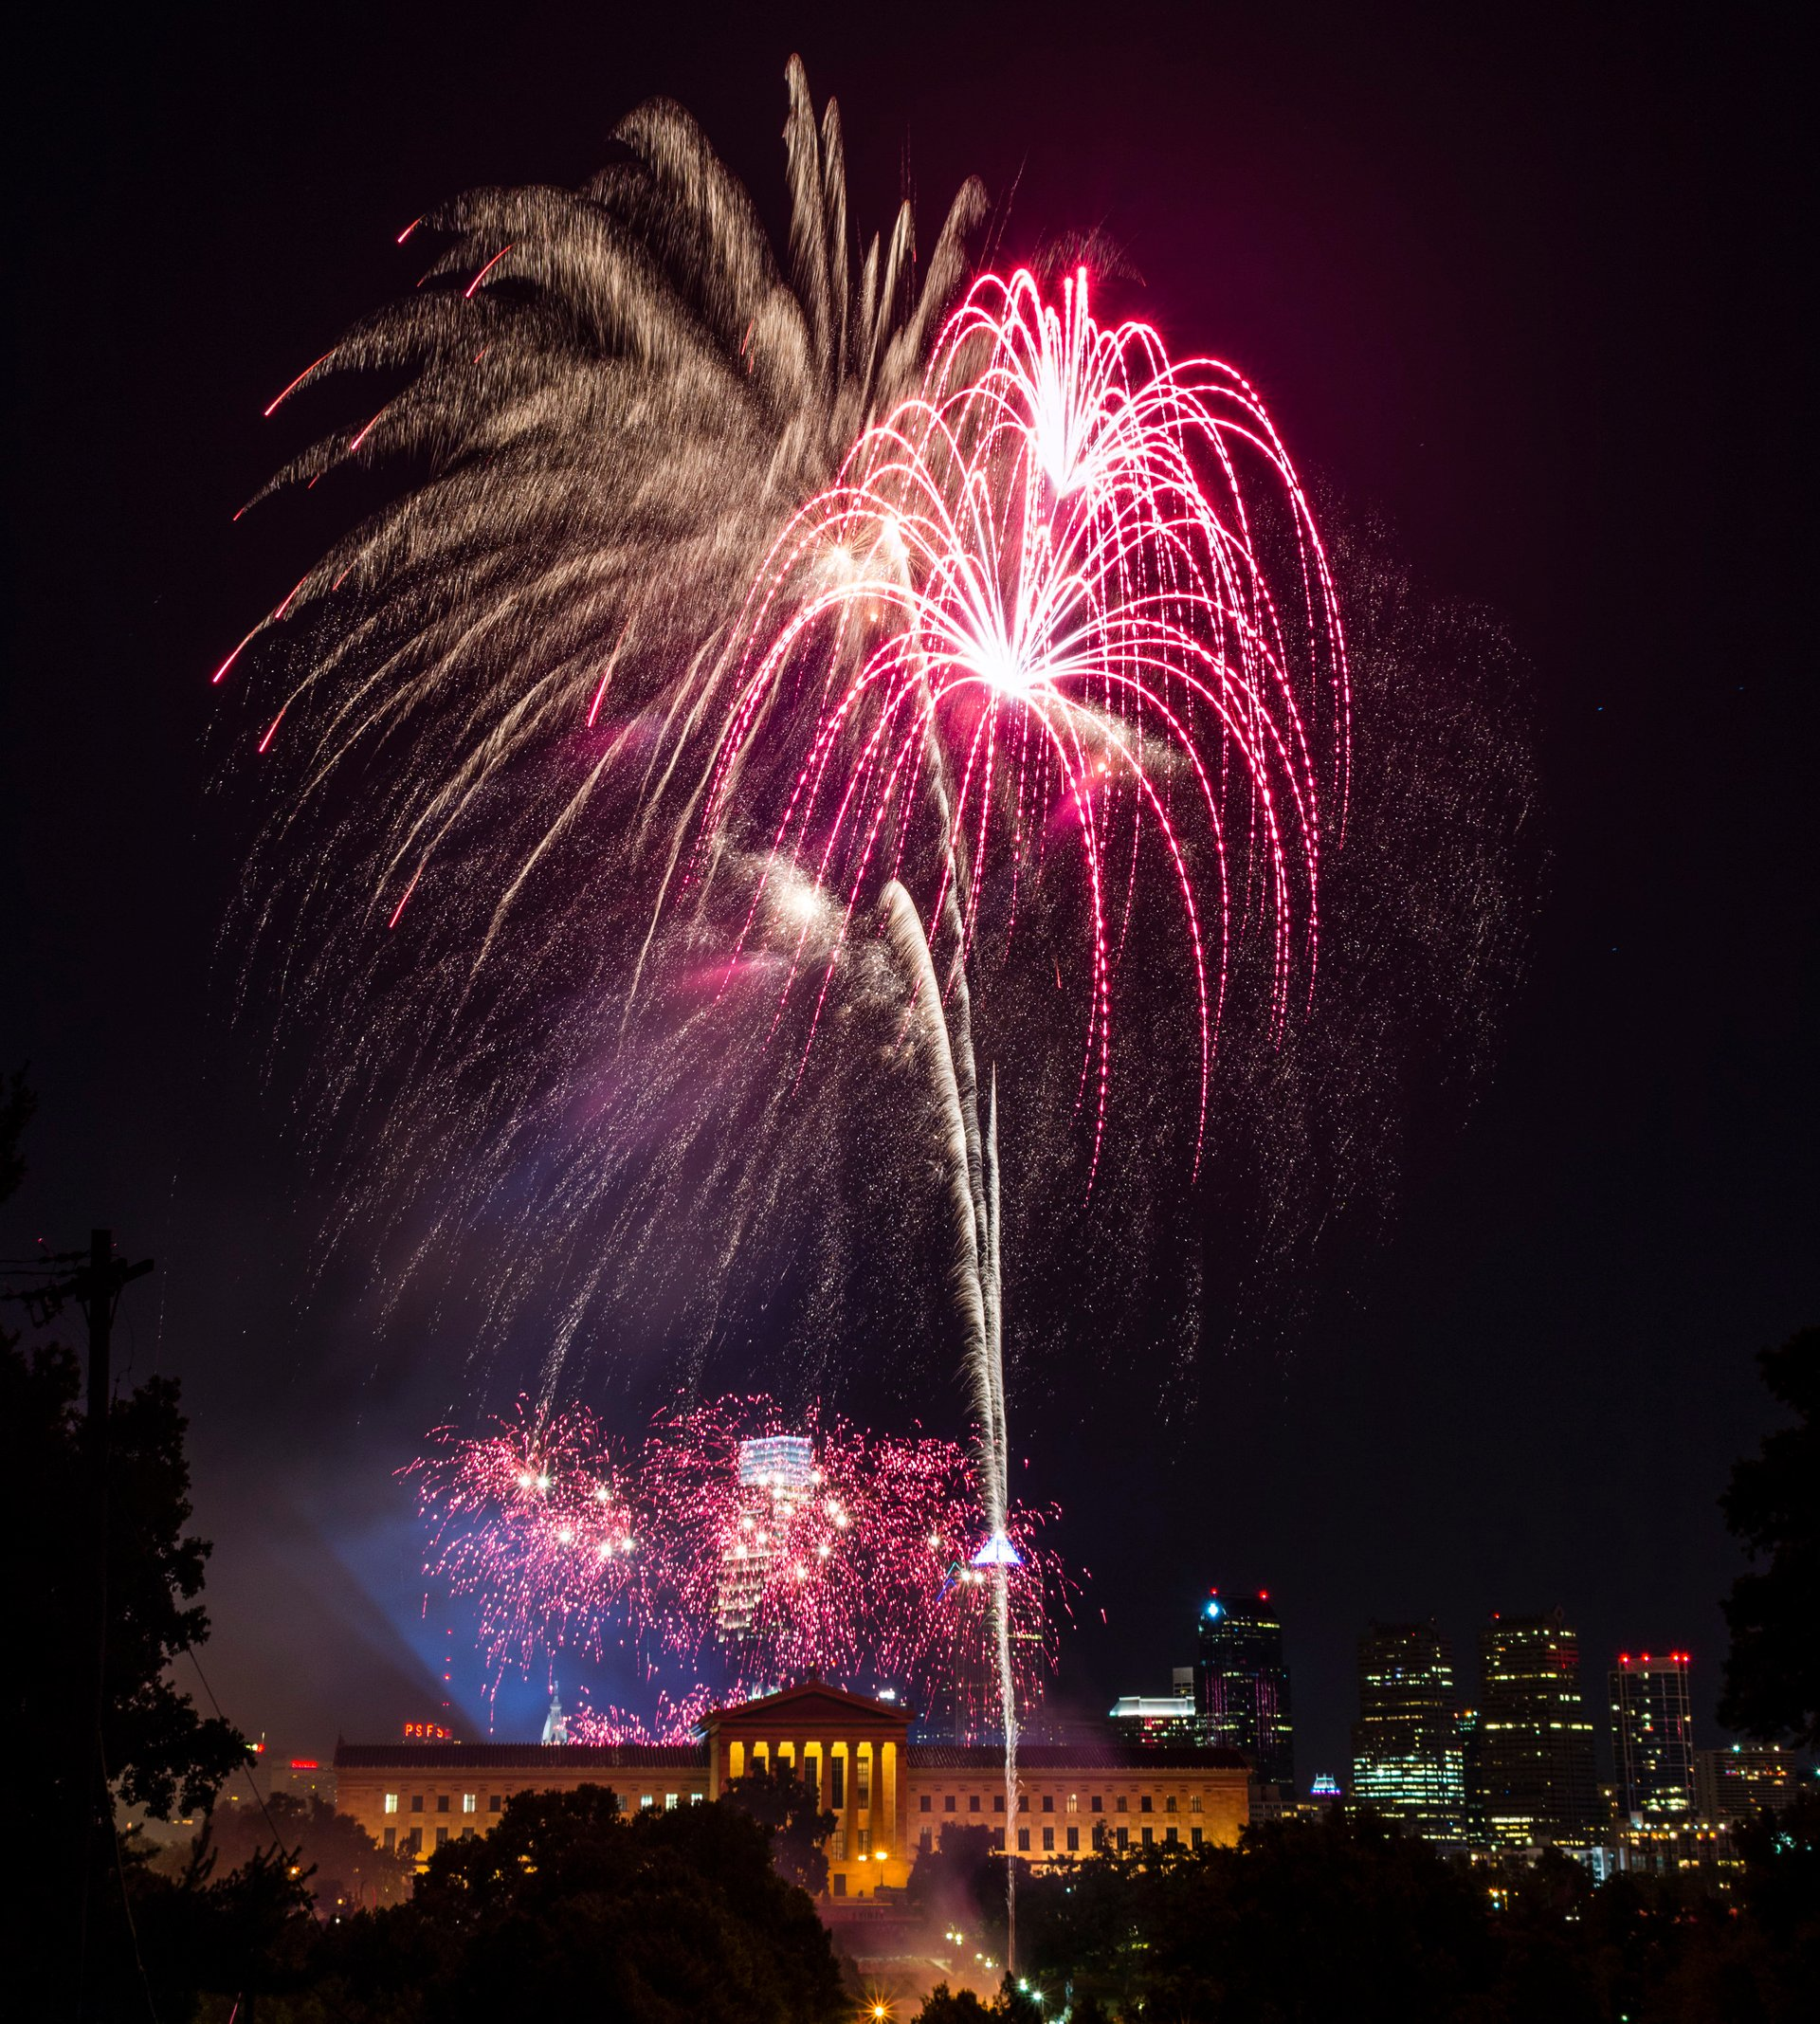 Fireworks over the Art Museum in Philadelphia 2020